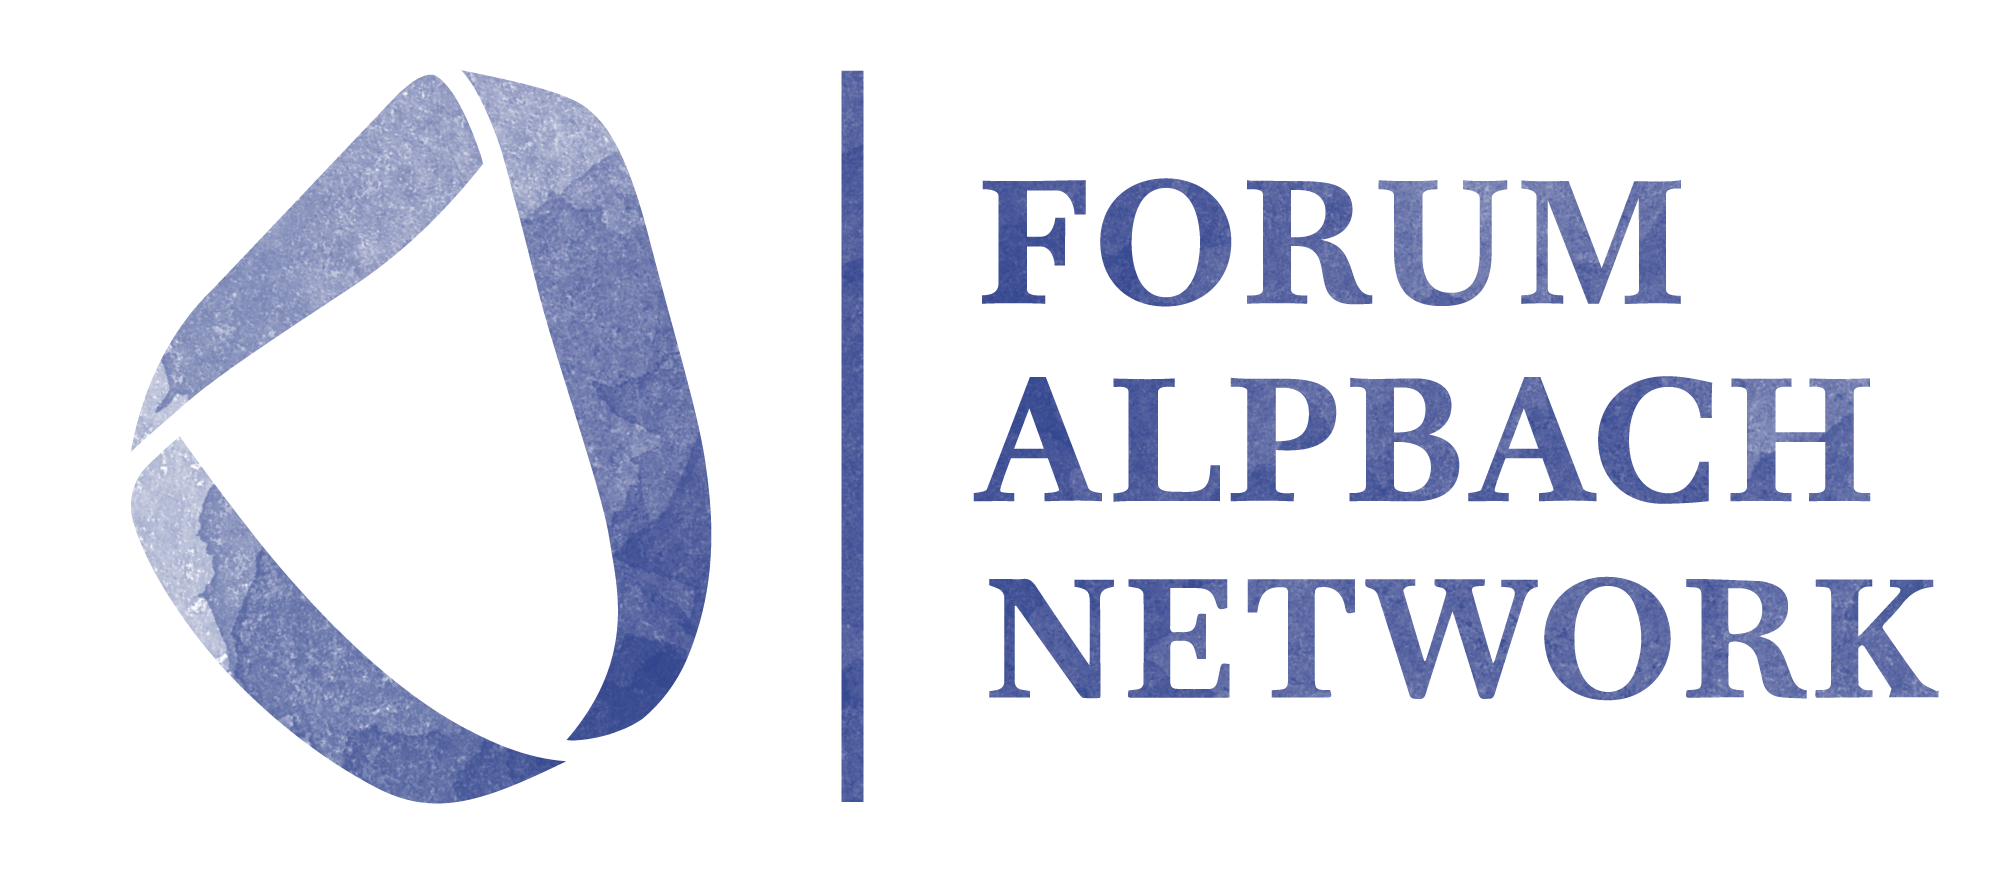 Forum Alpbach Network